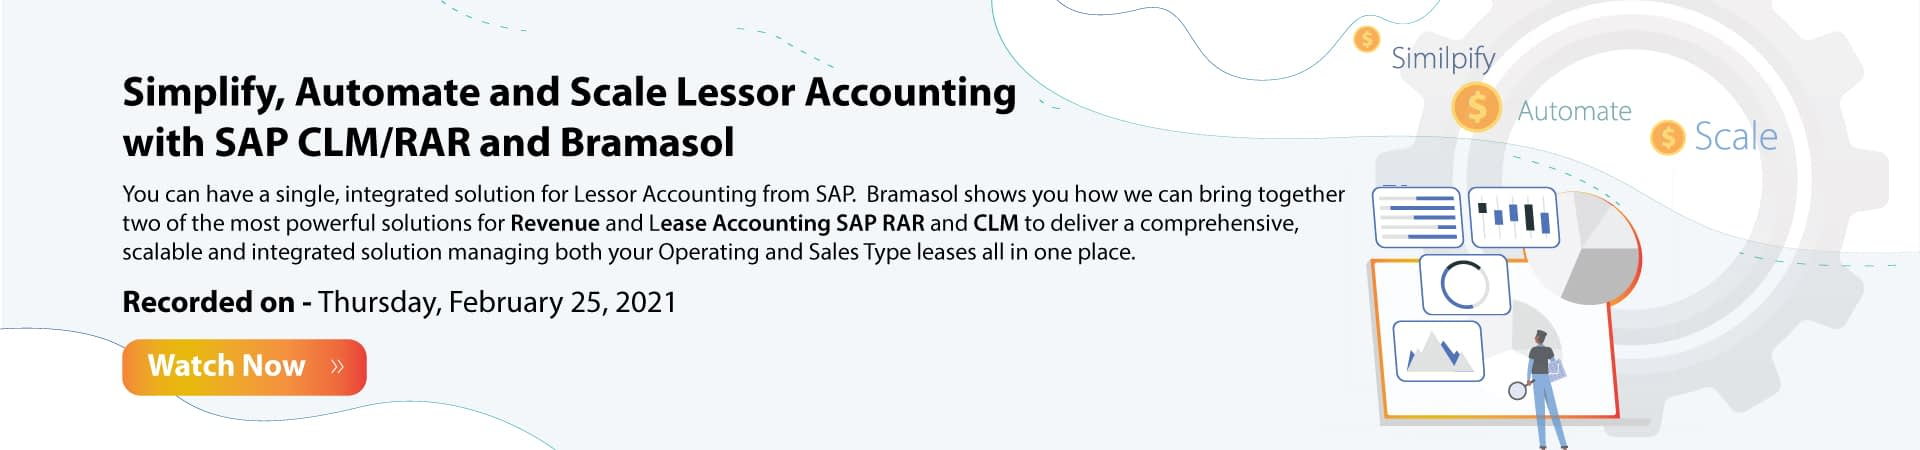 Simplify, Automate and Scale Lessor Accounting with SAP CLM/RAR and Bramasol